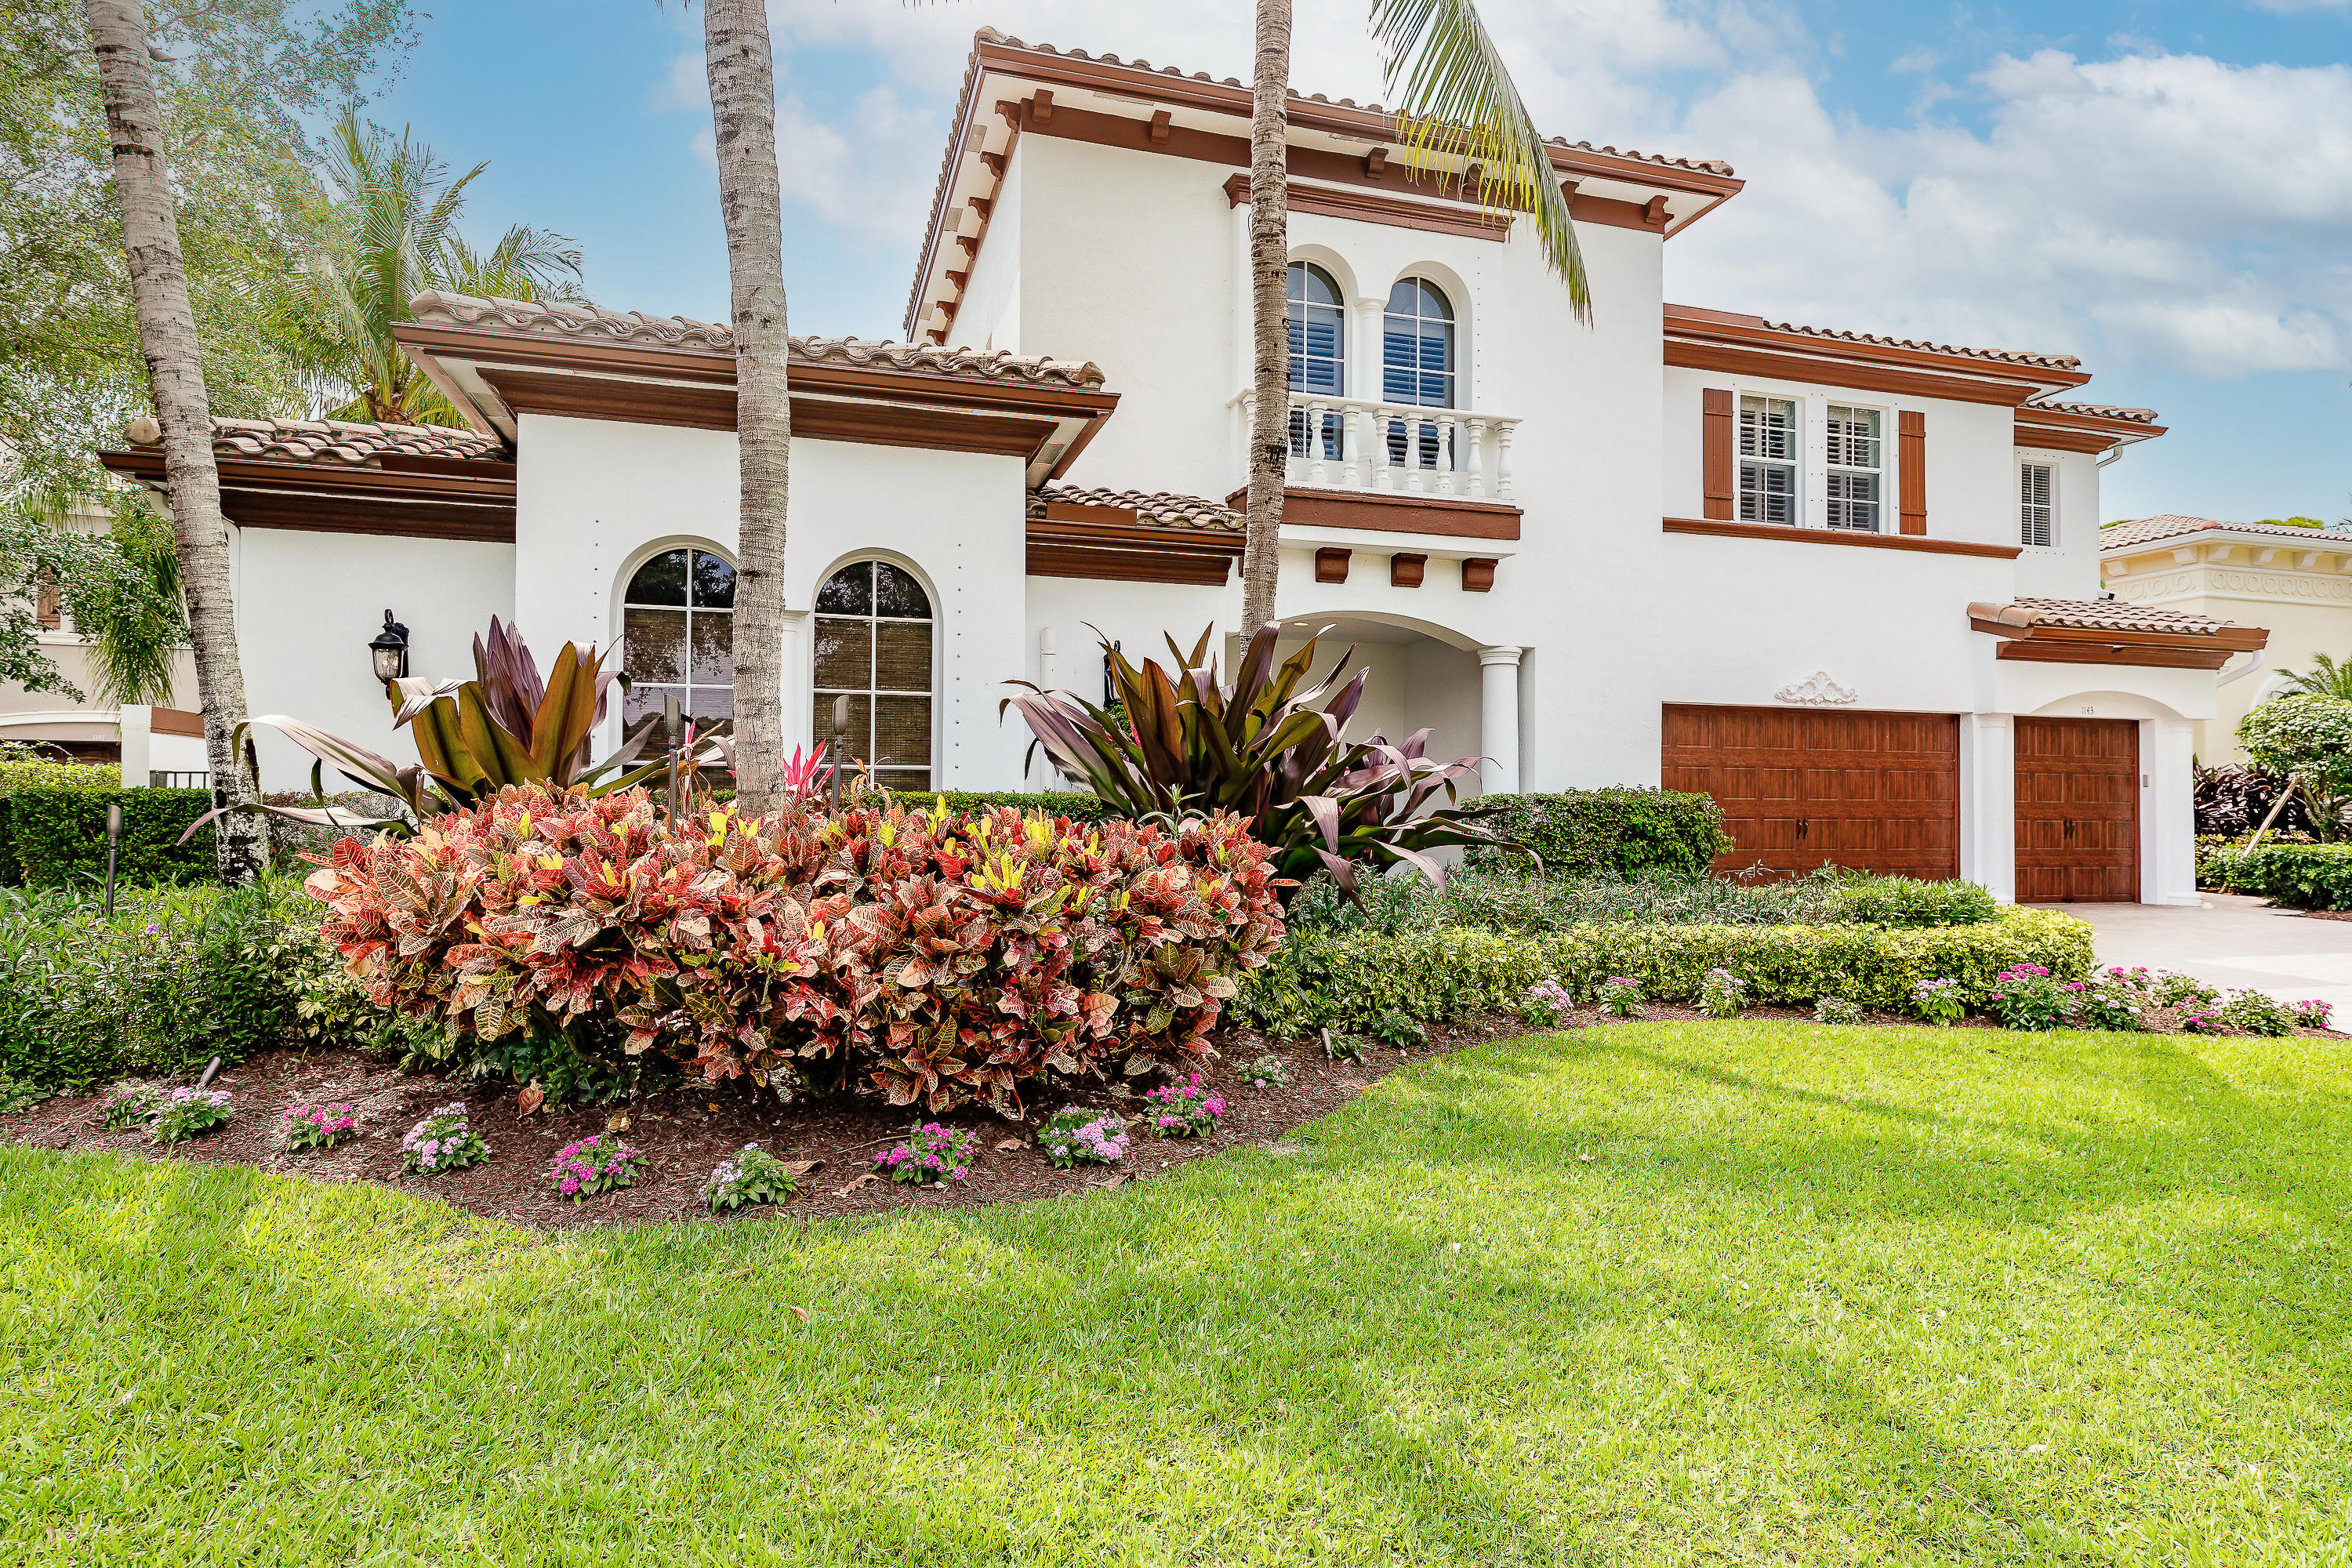 Magnificent 2-Story courtyard home w/Cabana and resort style pool in the secluded San Michele Private Estates gated community with 24- hour guard at gate, close to Florida beaches, Downtown the Gardens and shops and dining. This Gorgeous home has over $300K in recent upgrades and many additional features and shows like a model. It offers 5 Bdrms, 5 1/2 baths with 5585 sq ft of living space. Smart Home with State of the art lighting, security, video, audio and pool controlled by smart devices. 1 Year Smart home service plan included with purchase. Recently painted interior and exterior, custom designed exterior lighting and audio as well as newly upgraded landscaping throughout. PLEASE SEE SUPPLEMENT REMARKS FOR ADDITIONAL INFORMATION ! Complete Kitchen remodel with newer appliances and Cabana with bathroom remodel including theater like surround system. Plantation shutters throughout, new carpets, new wi-fi network for maximum connectivity are all standard features of this exquisite home.. Estate is located across the lake with a Southern facing resort pool/spa. Enter through the wrought iron gates to a tropical paradise overlooking cascading waterfalls, large courtyard with plenty of space for entertaining guests and family. Come secure your place in Paradise now!!